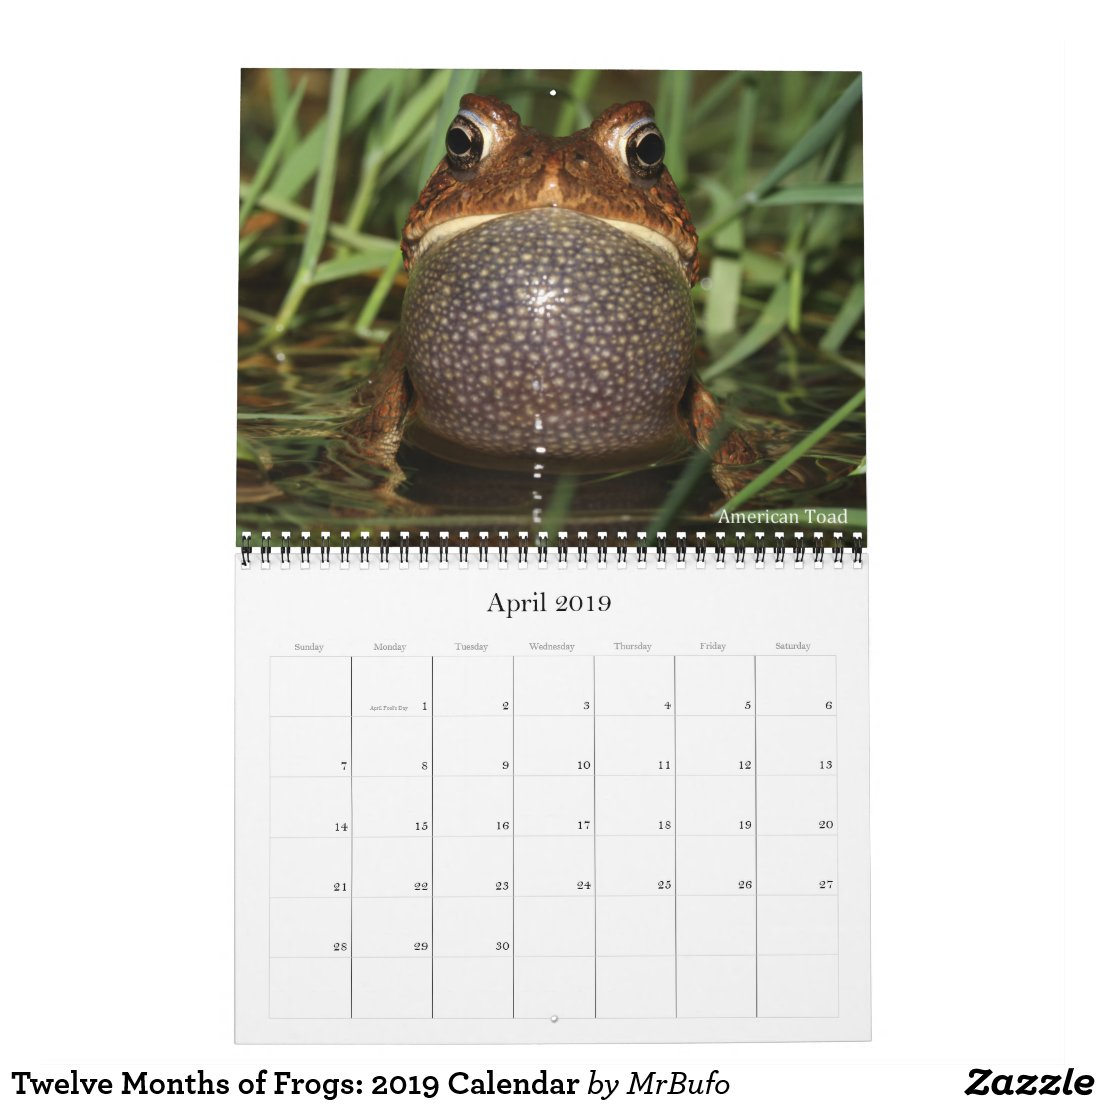 2019 Frog Photo Calendar for sale; American Toad Photo